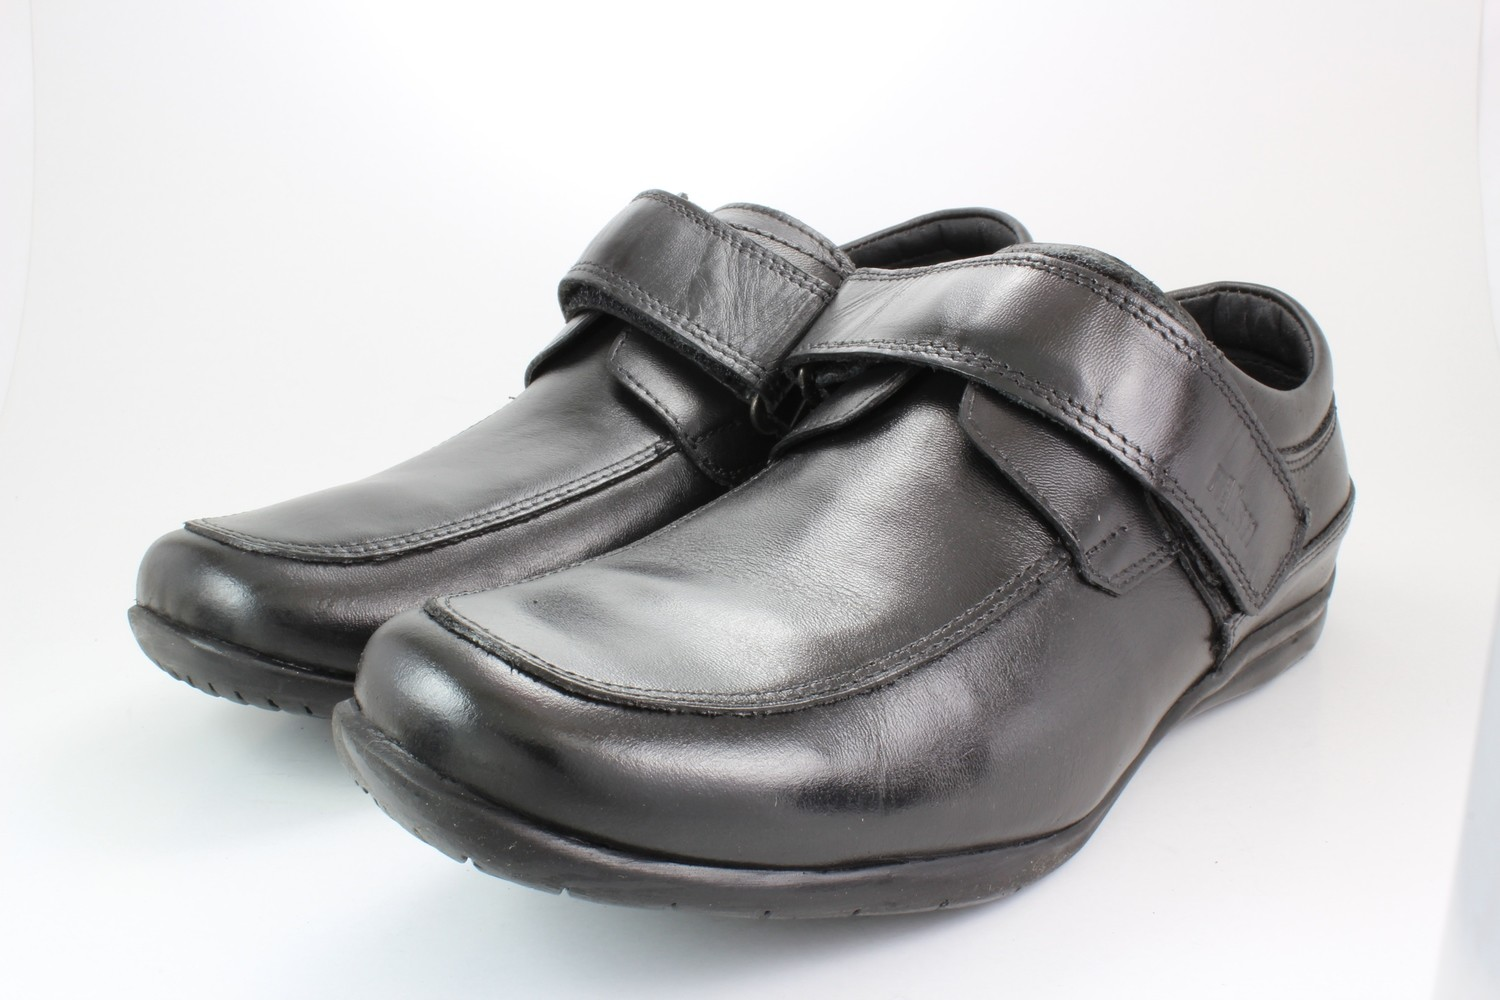 Mens Shoes Genuine Leather Black - SUGGESTED RETAIL PRICE $45.00 - WHOLESALE PRICE $8.5 - Minimum purchase 12 pairs